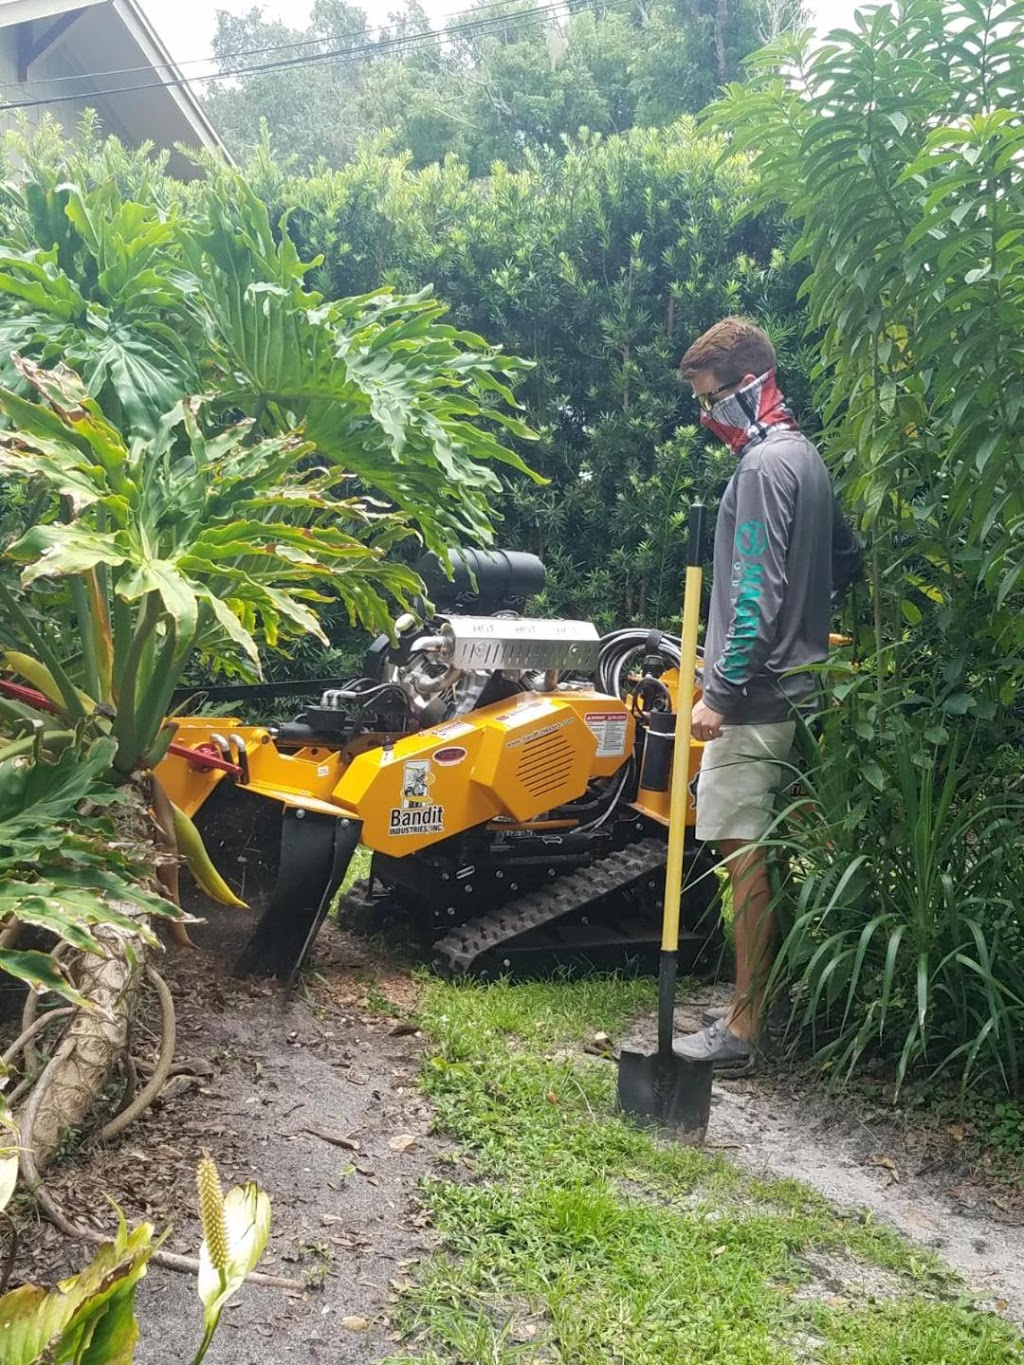 Southern Stump Removal, LLC - point of interest  | Photo 10 of 10 | Address: 1585 Waterwitch Dr, Orlando, FL 32806, USA | Phone: (407) 883-6197